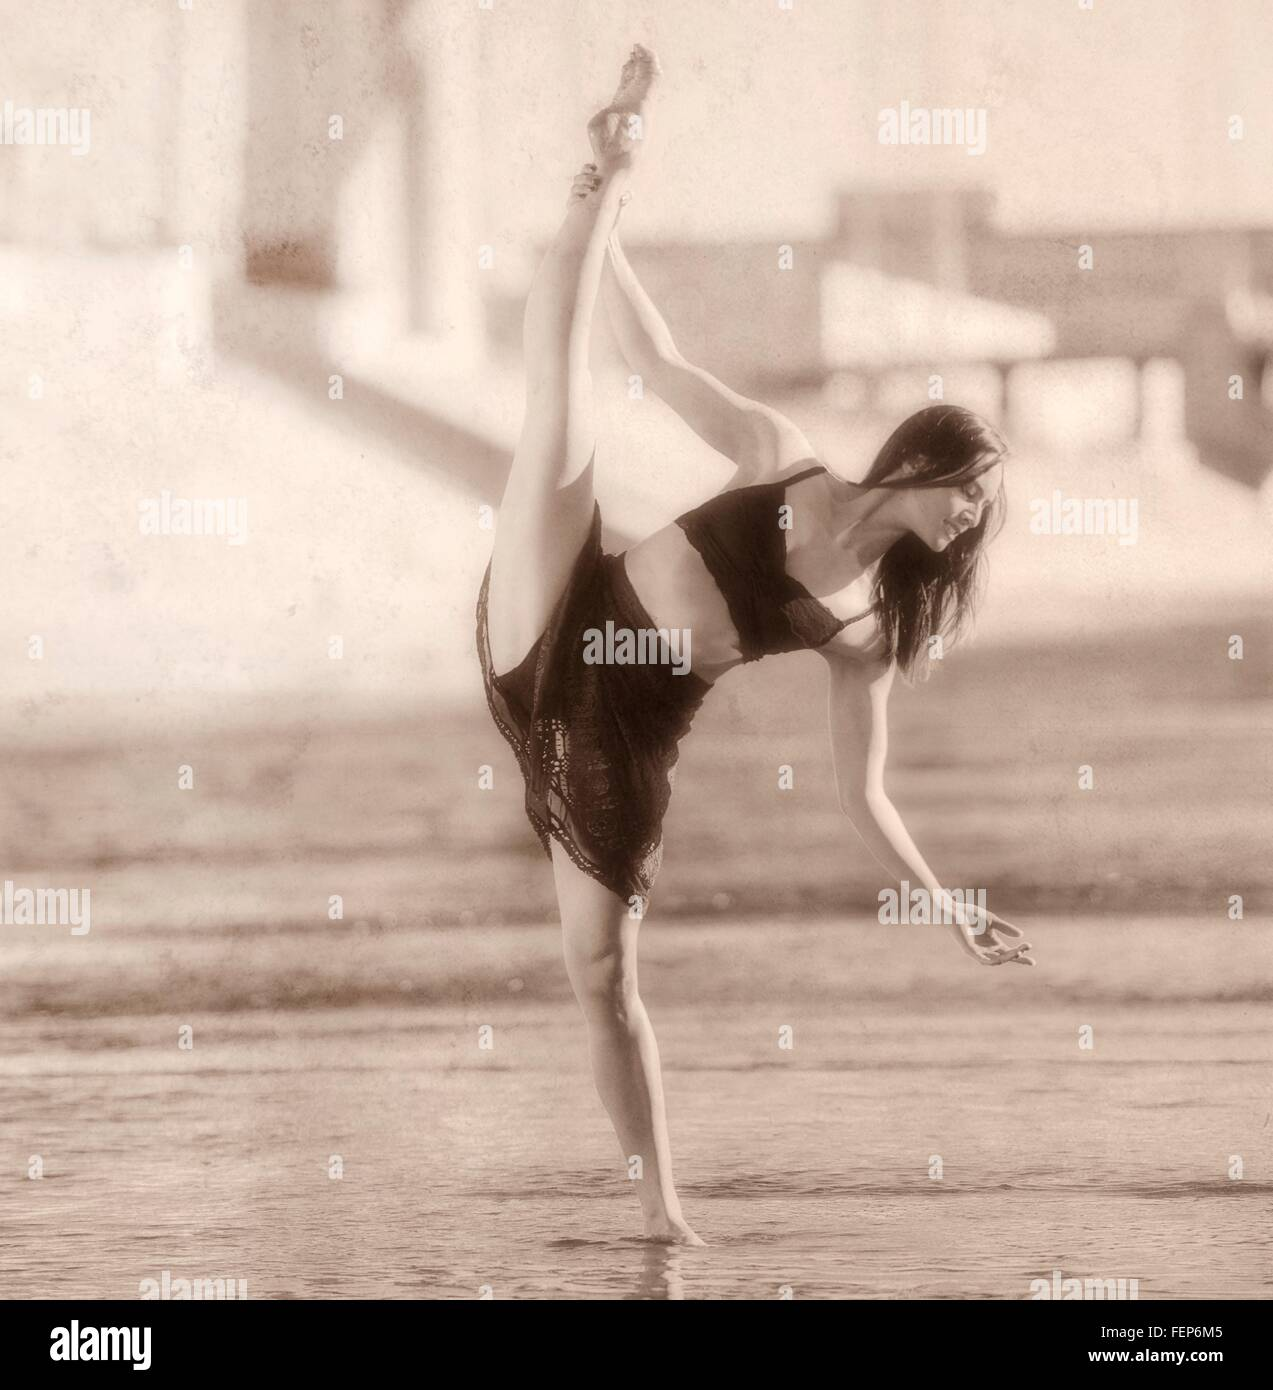 Young woman leg raised, balancing on one leg, b&w, Los Angeles, California, USA - Stock Image